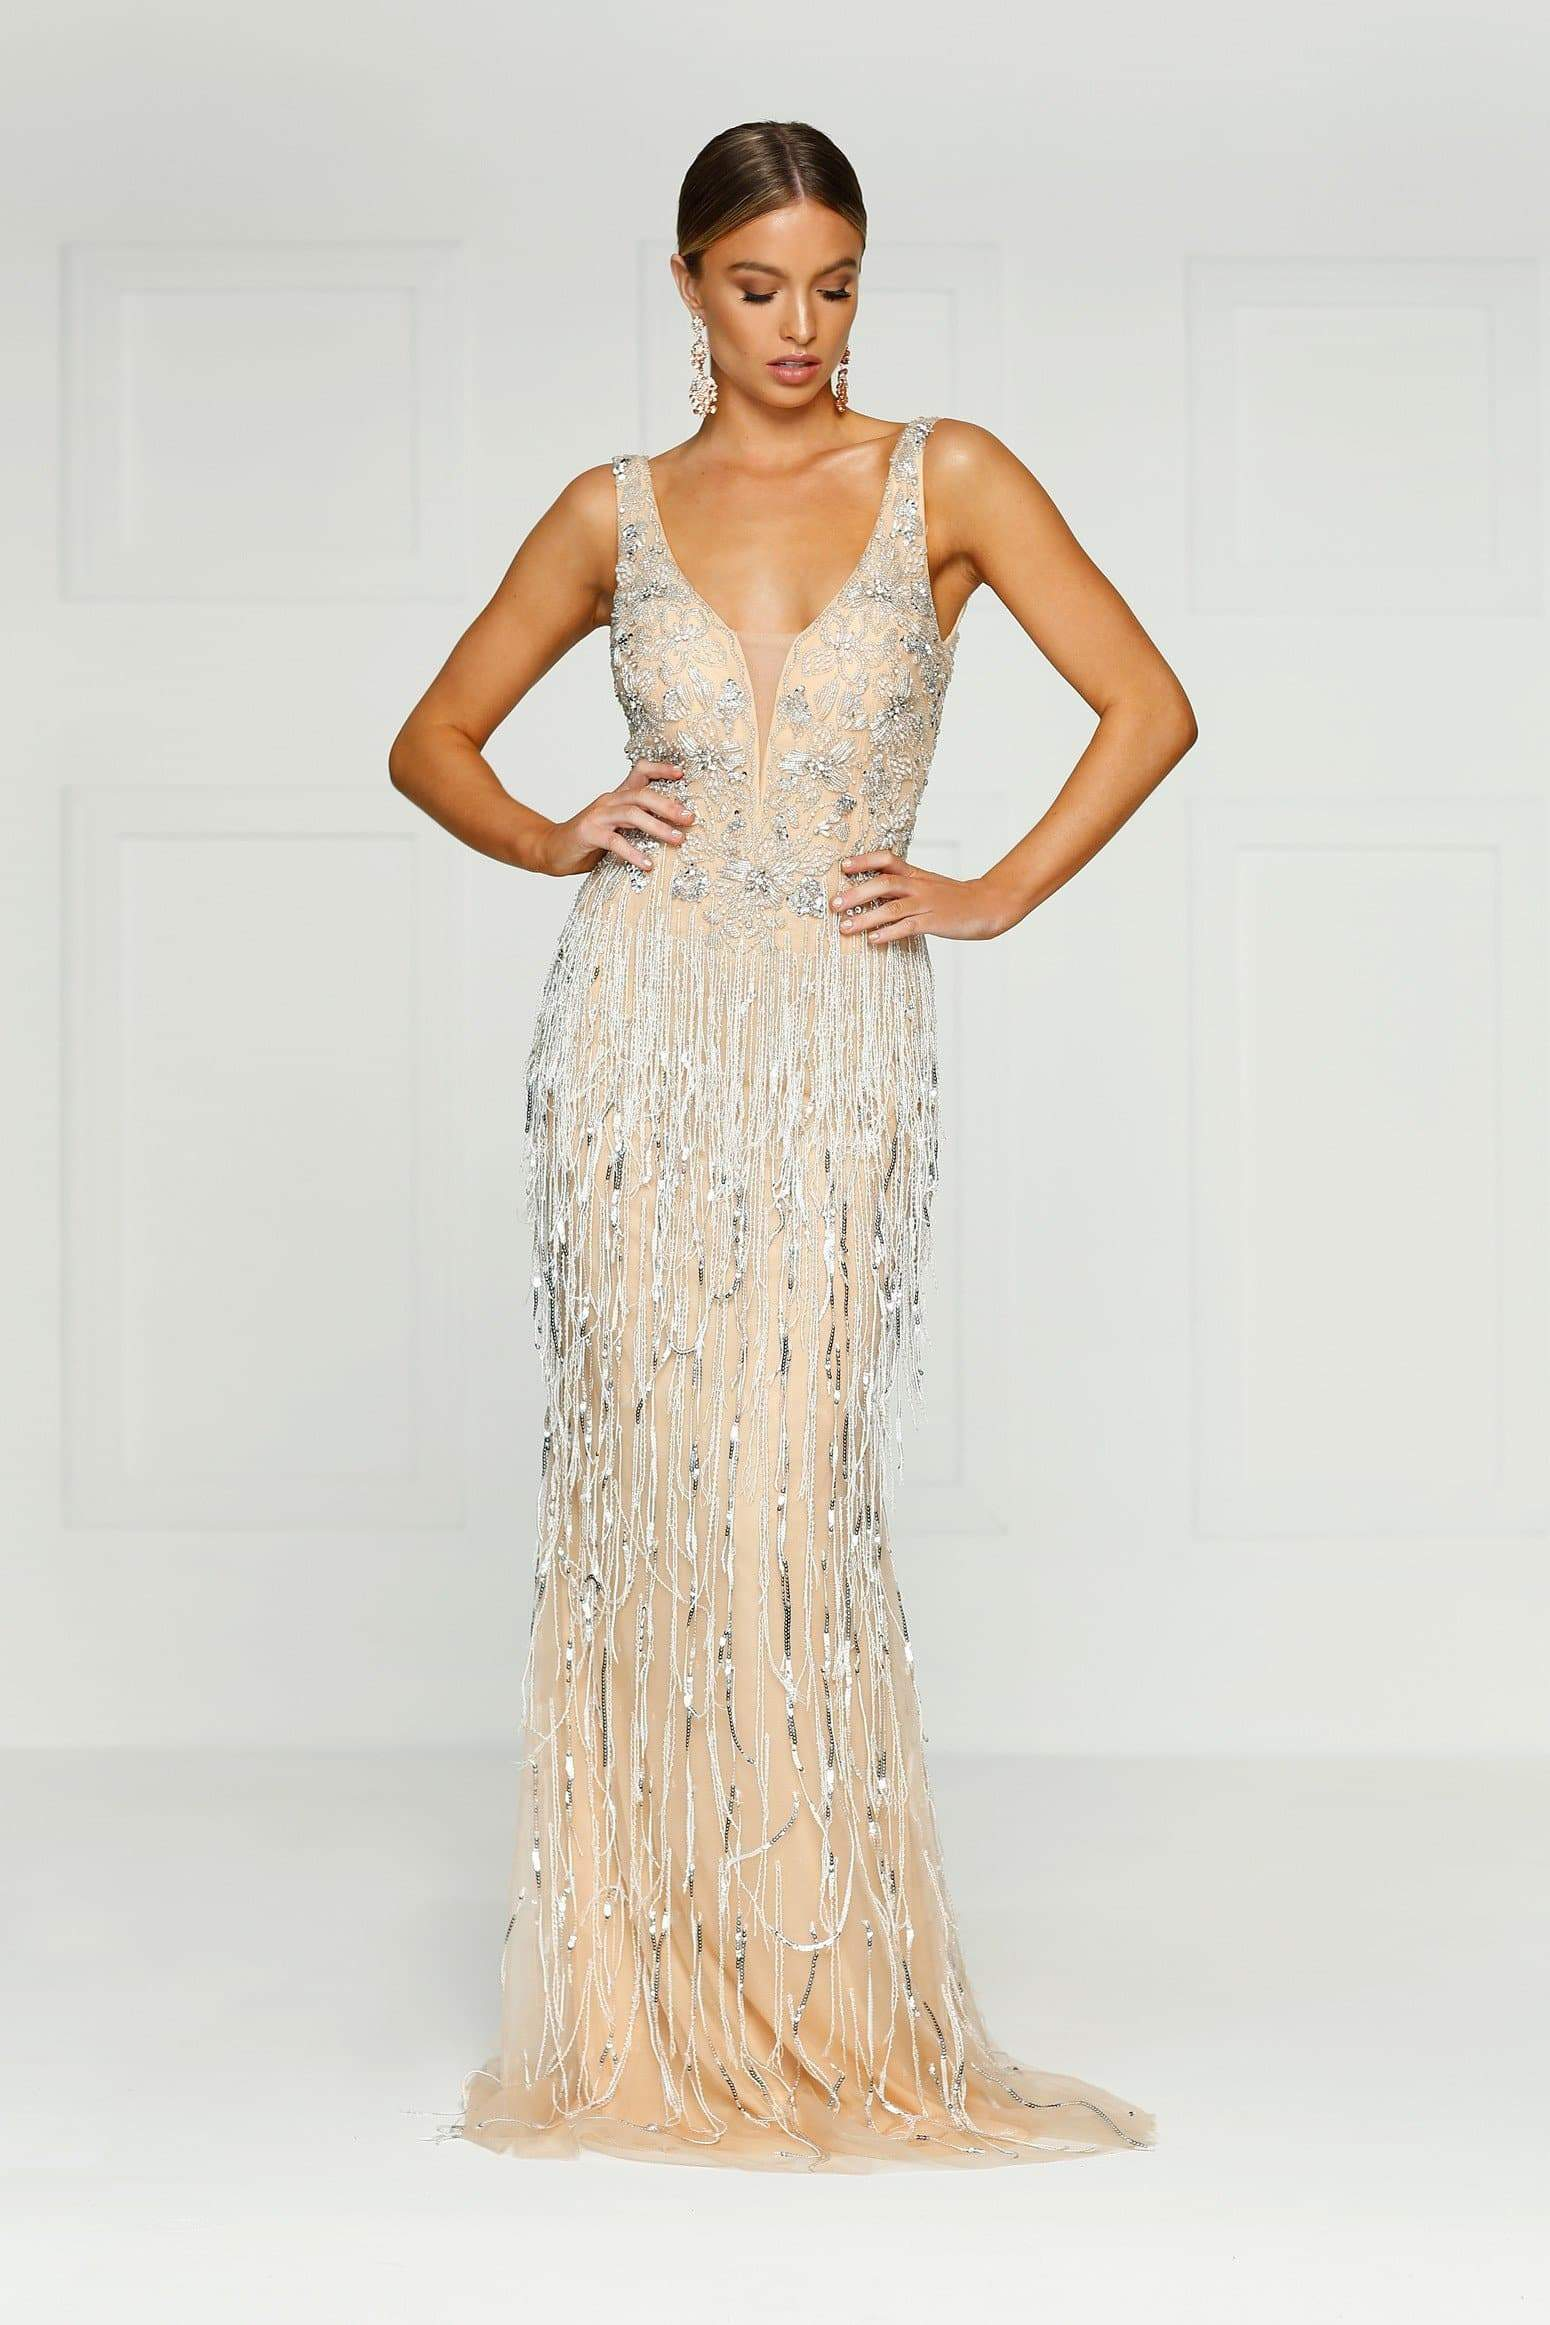 d2a2b9e6080 ... Queen of Jewels Gown - Champagne Mesh V Neck Beaded Mermaid Dress ...